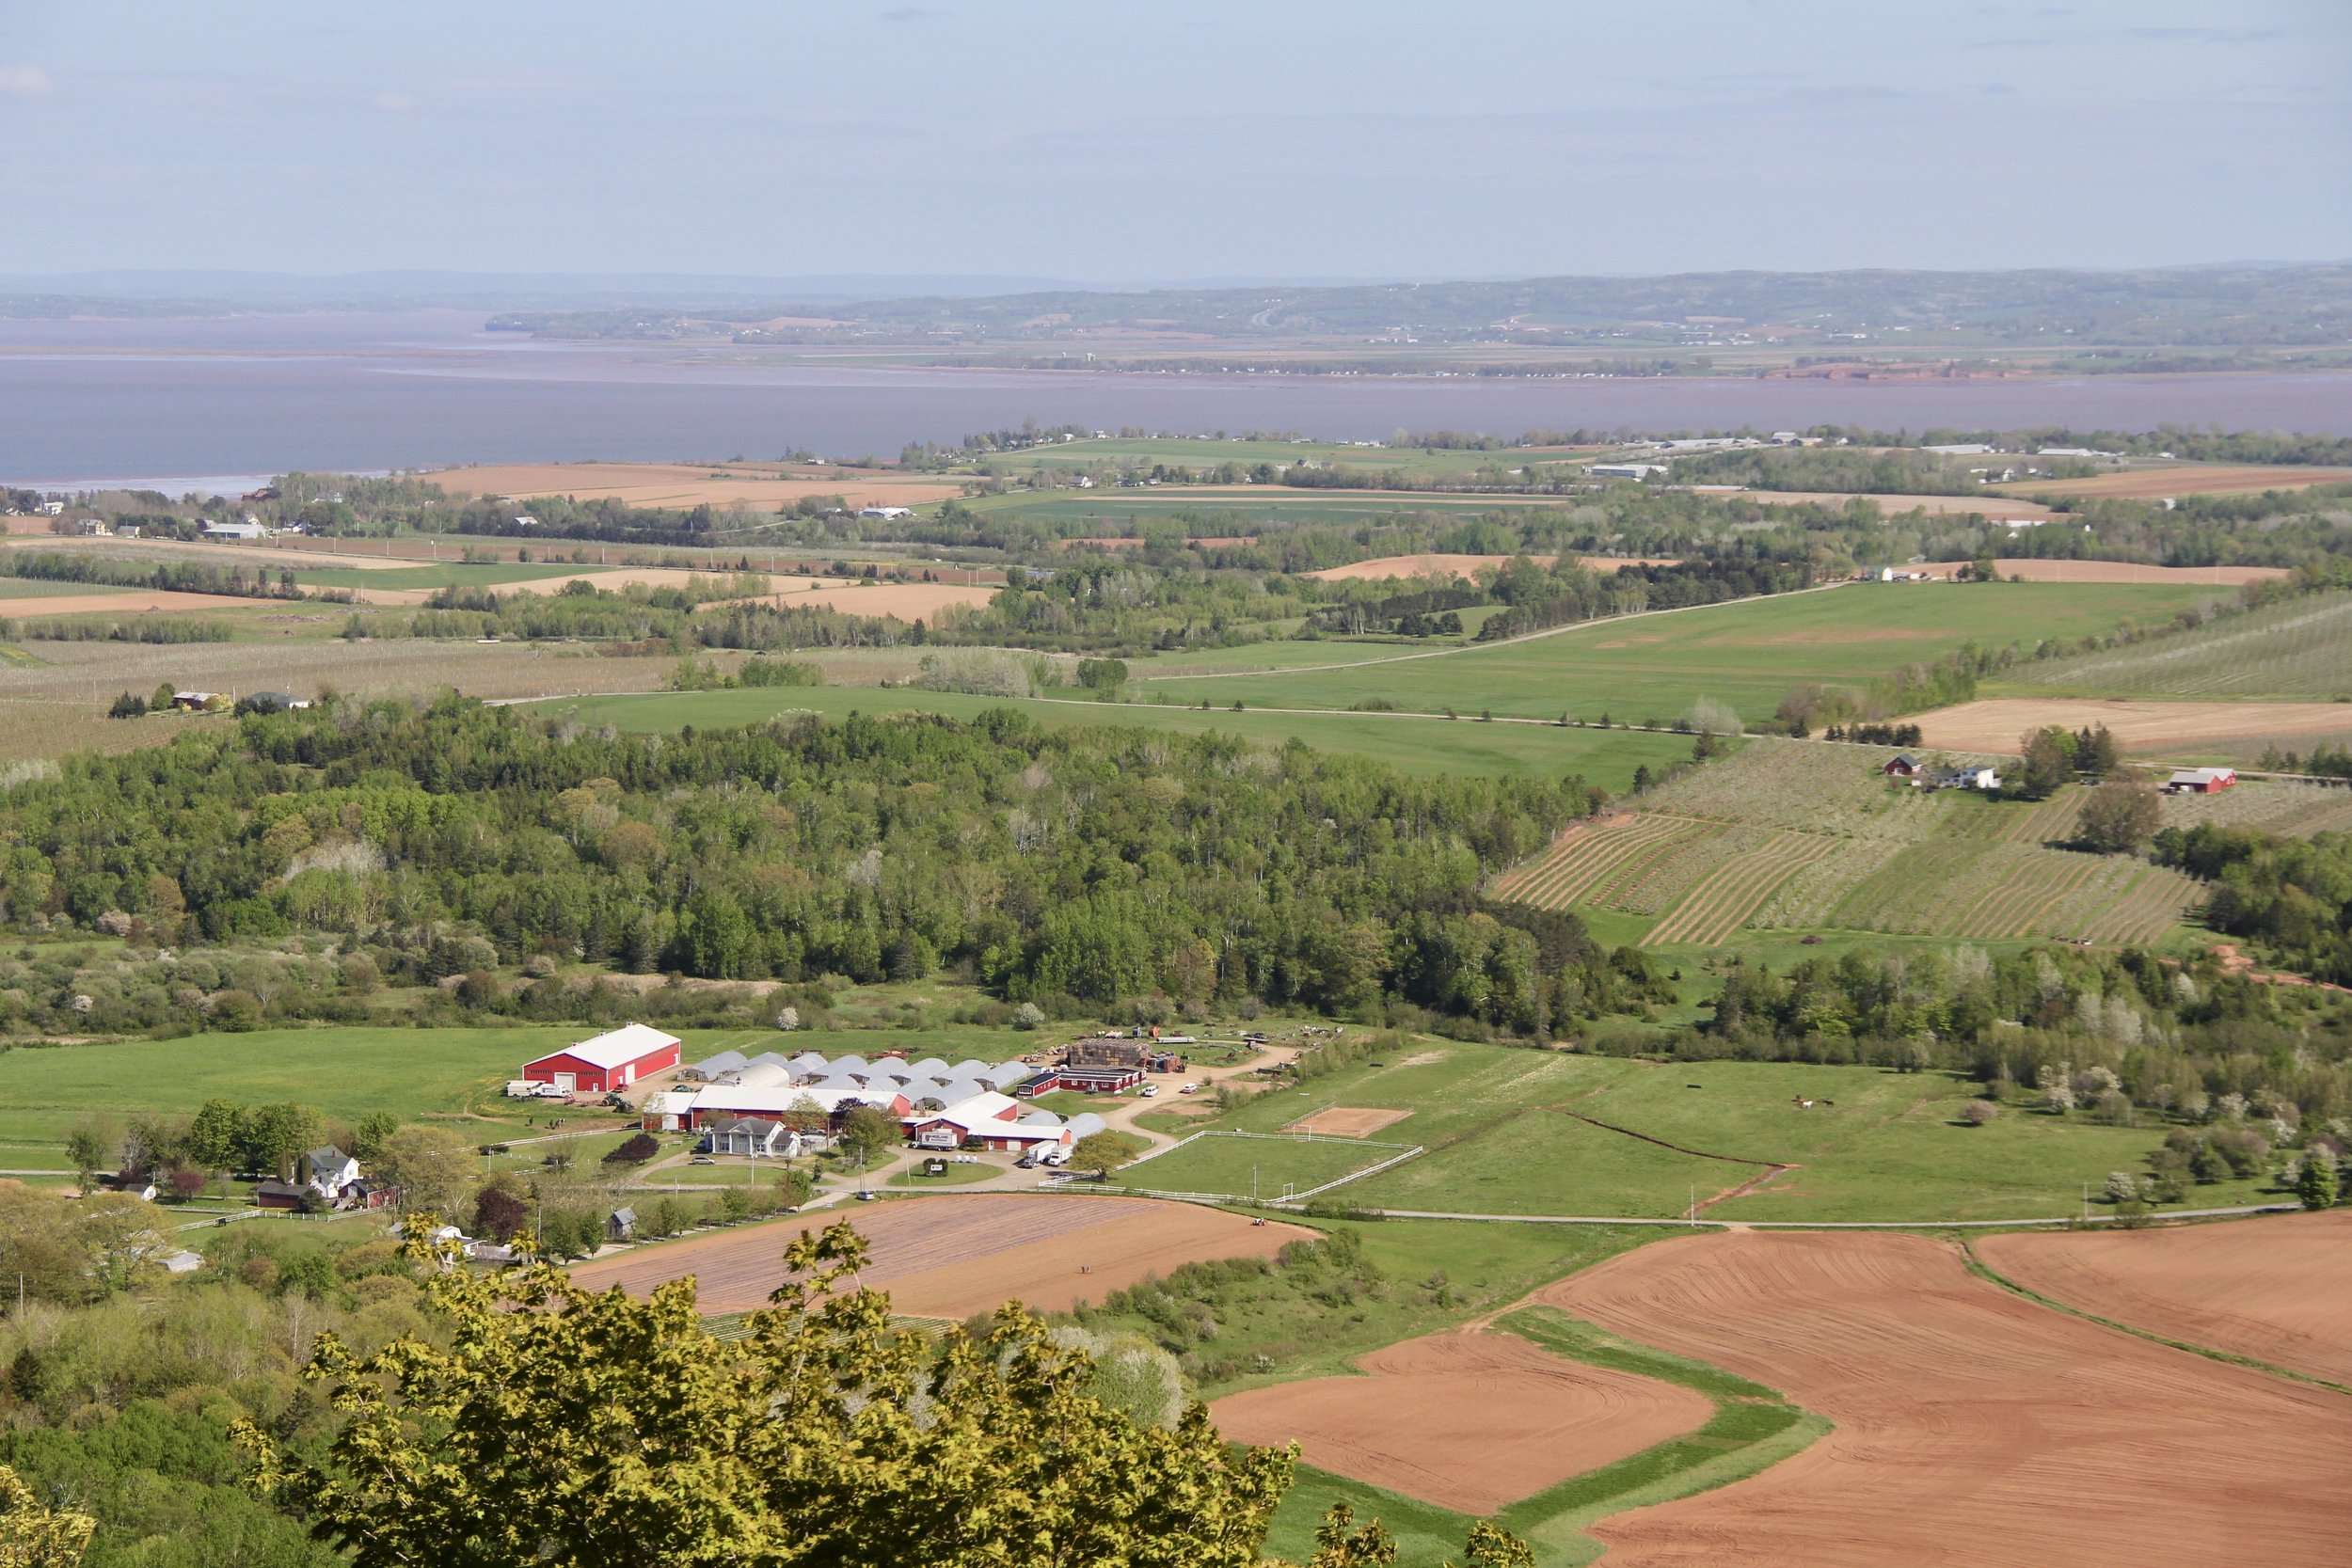 The Annapolis Valley as seen from the Lookoff on the North Mountain